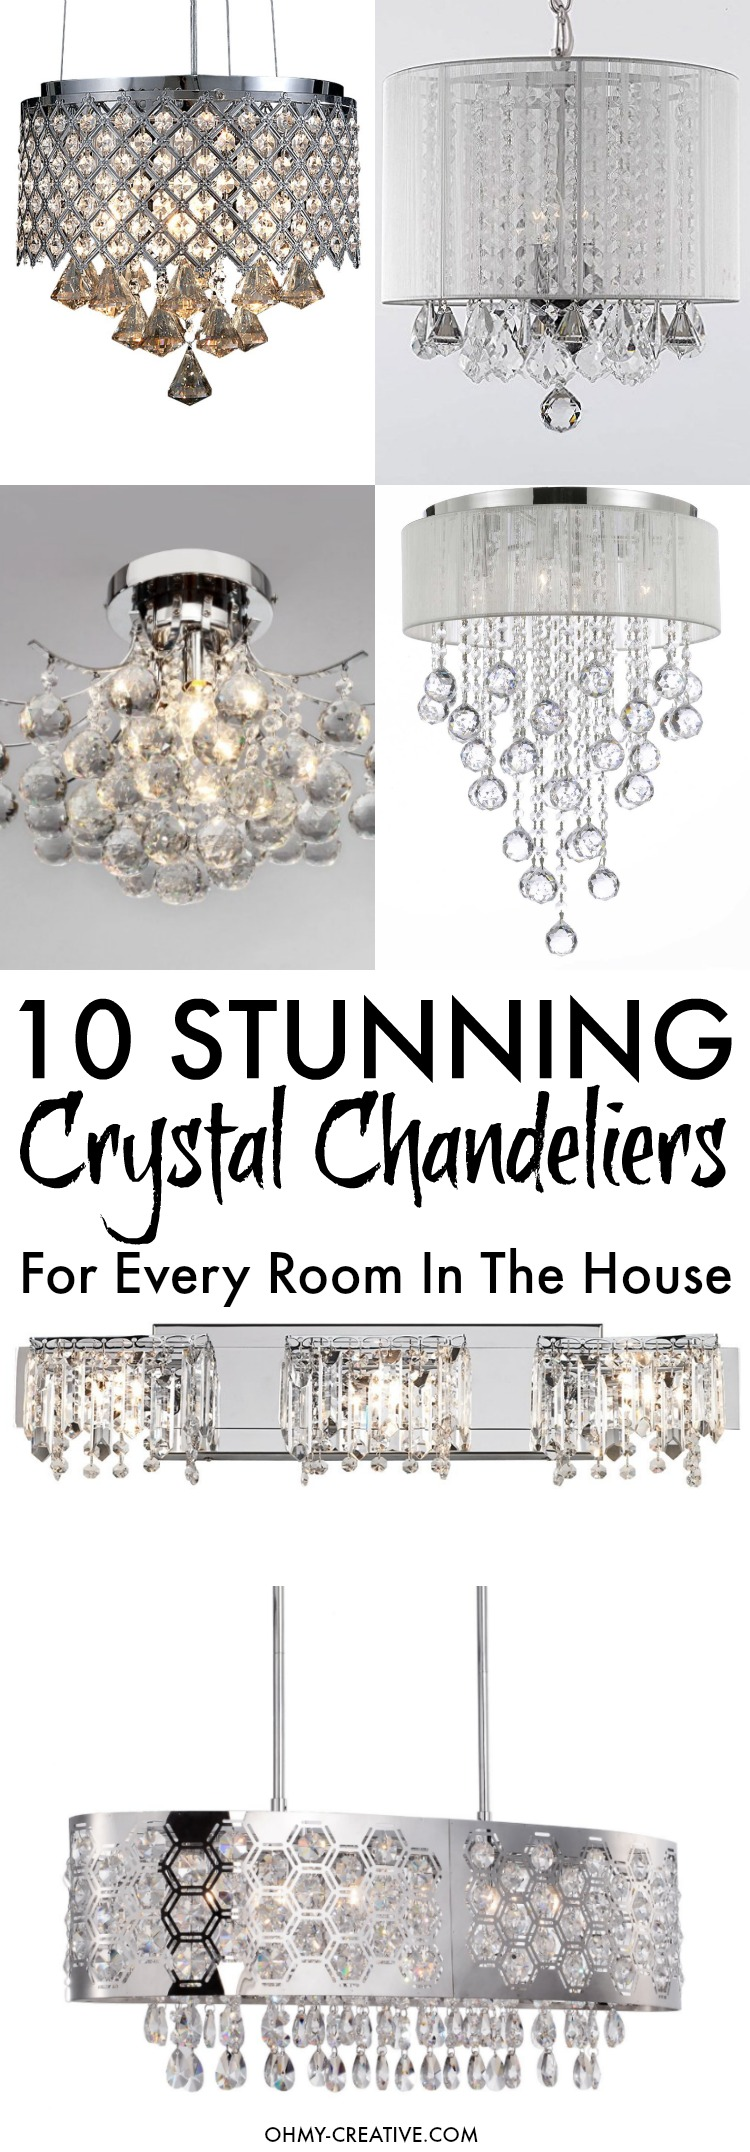 Stunning Crystal Chandelier Lights Oh My Creative - Chandelier lights for bedrooms